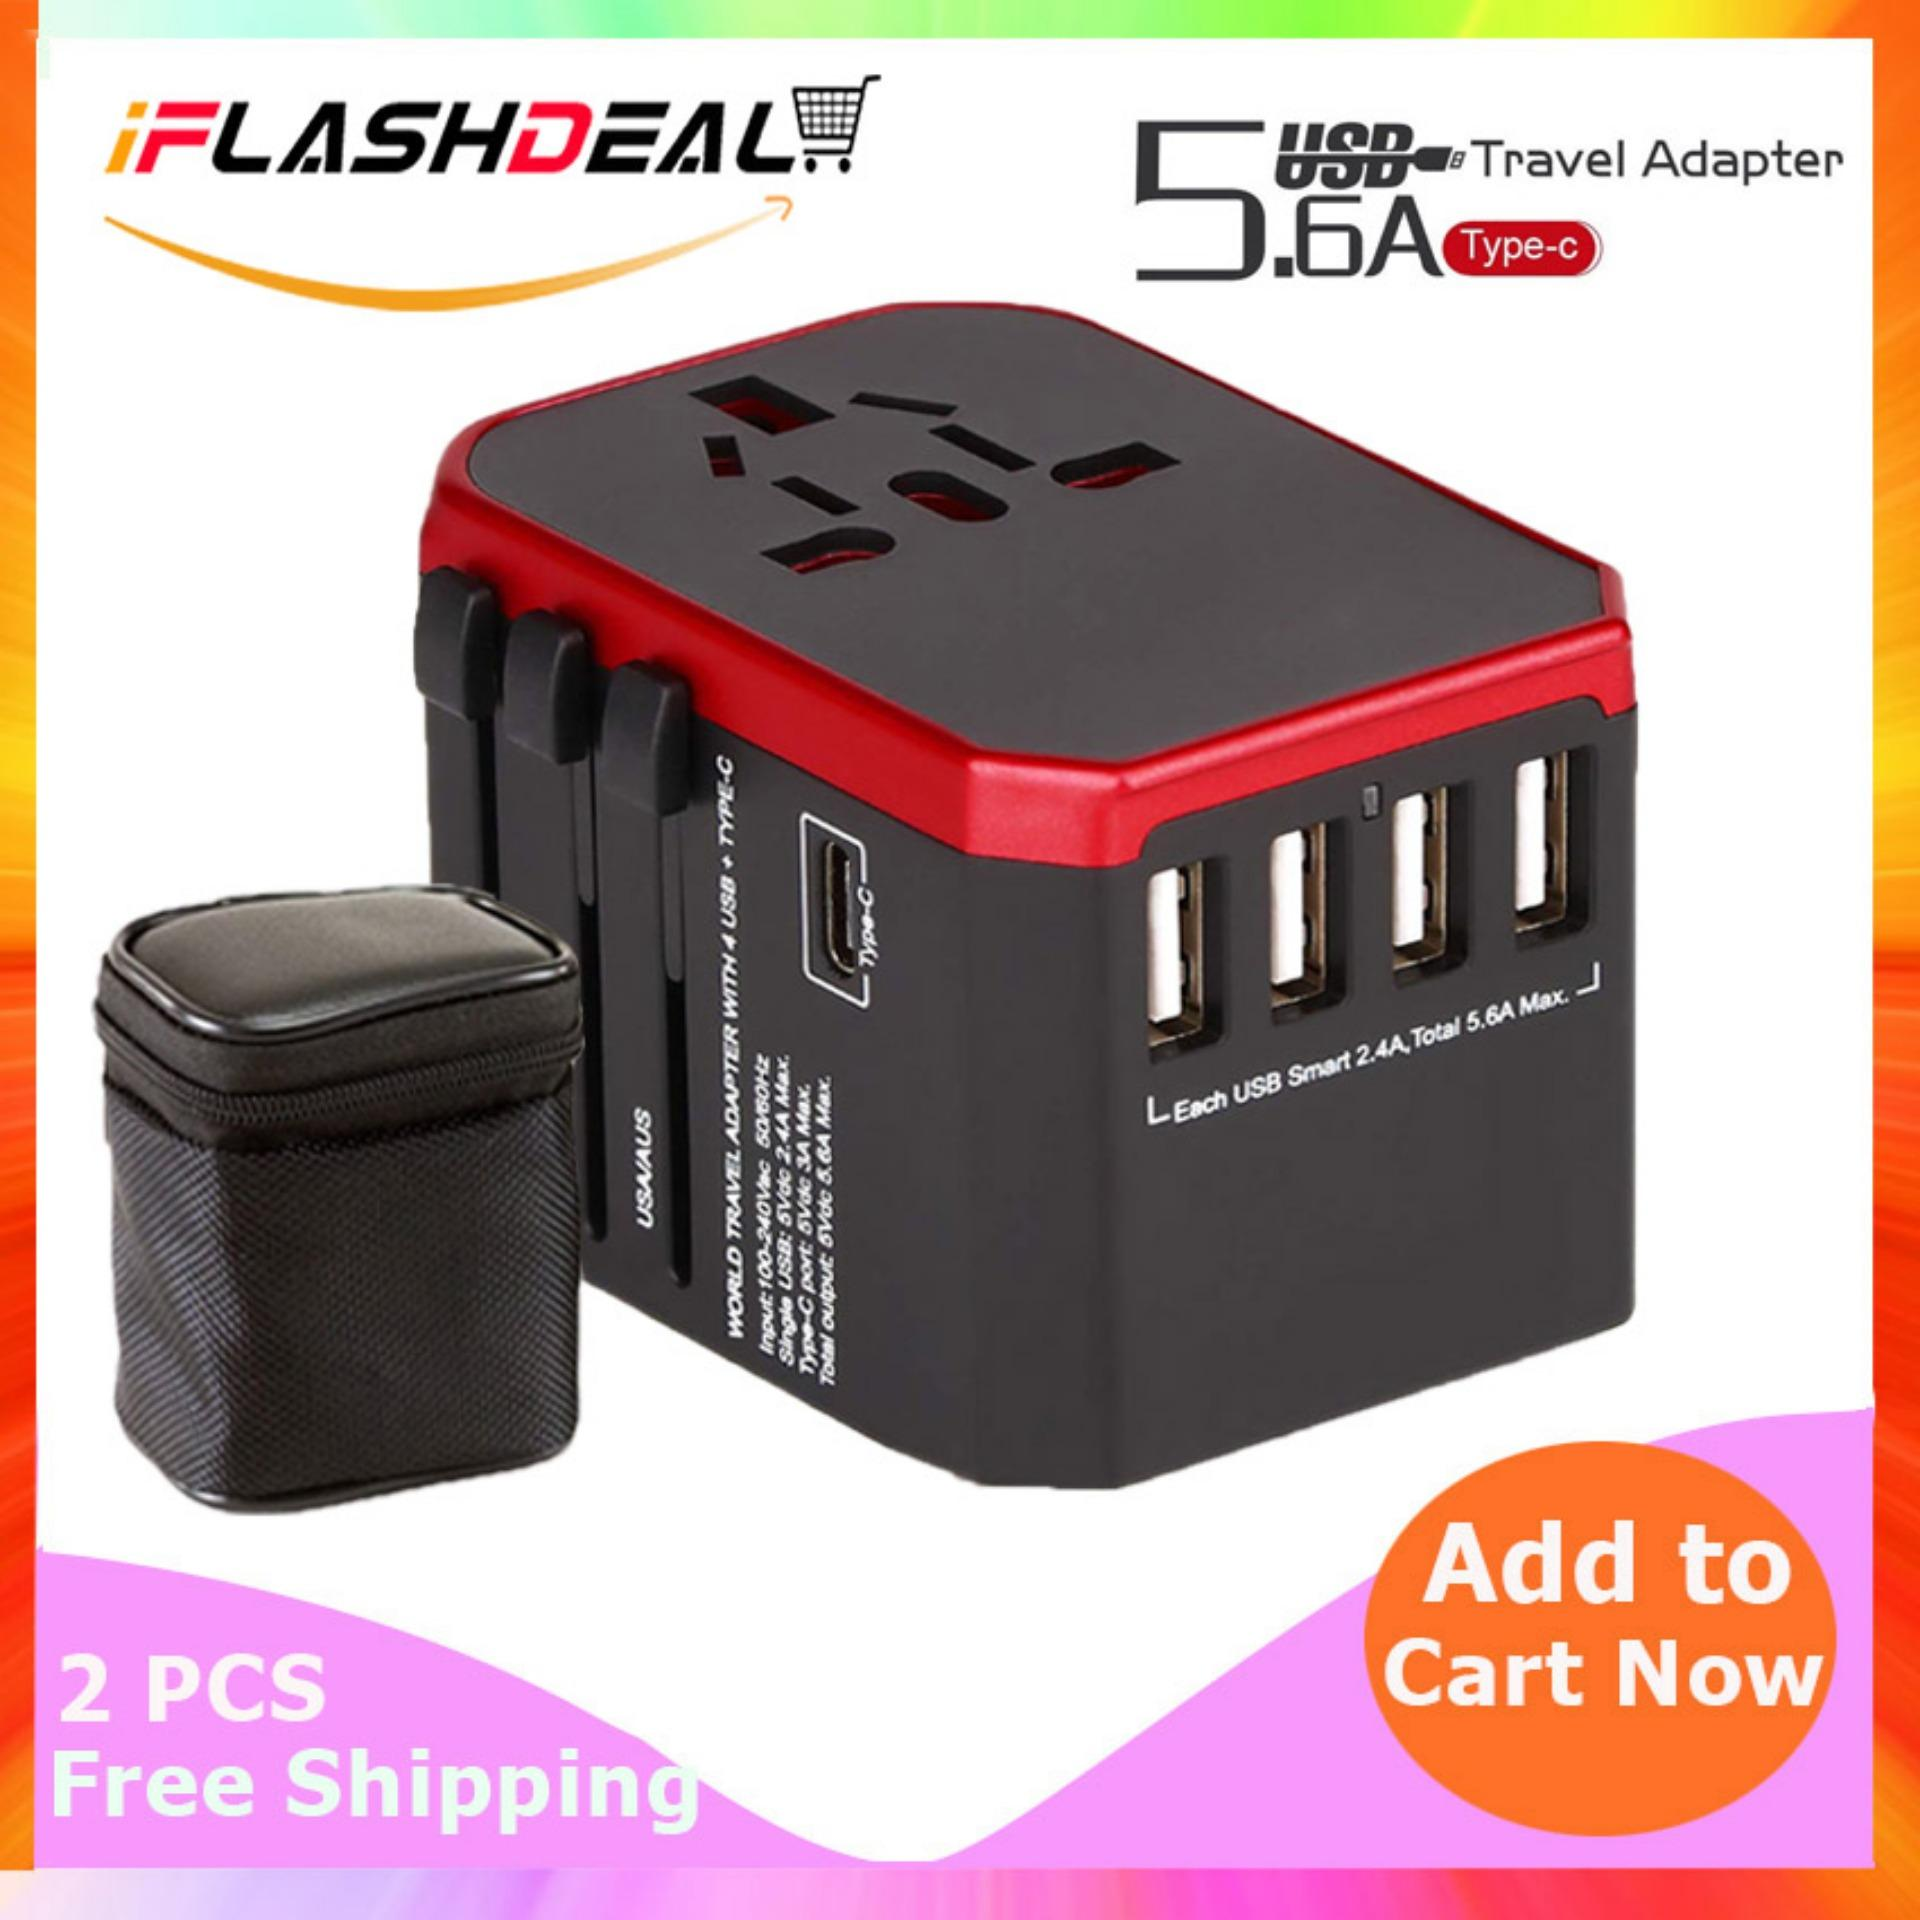 Iflashdeal Ultimate Universal Travel Adapter All In One International Worldwide Wall Power Travel Adaptor With 4 Usb Port + 1 Type-C Port Fast Wall Charger Plug (black) By Iflashdeal.